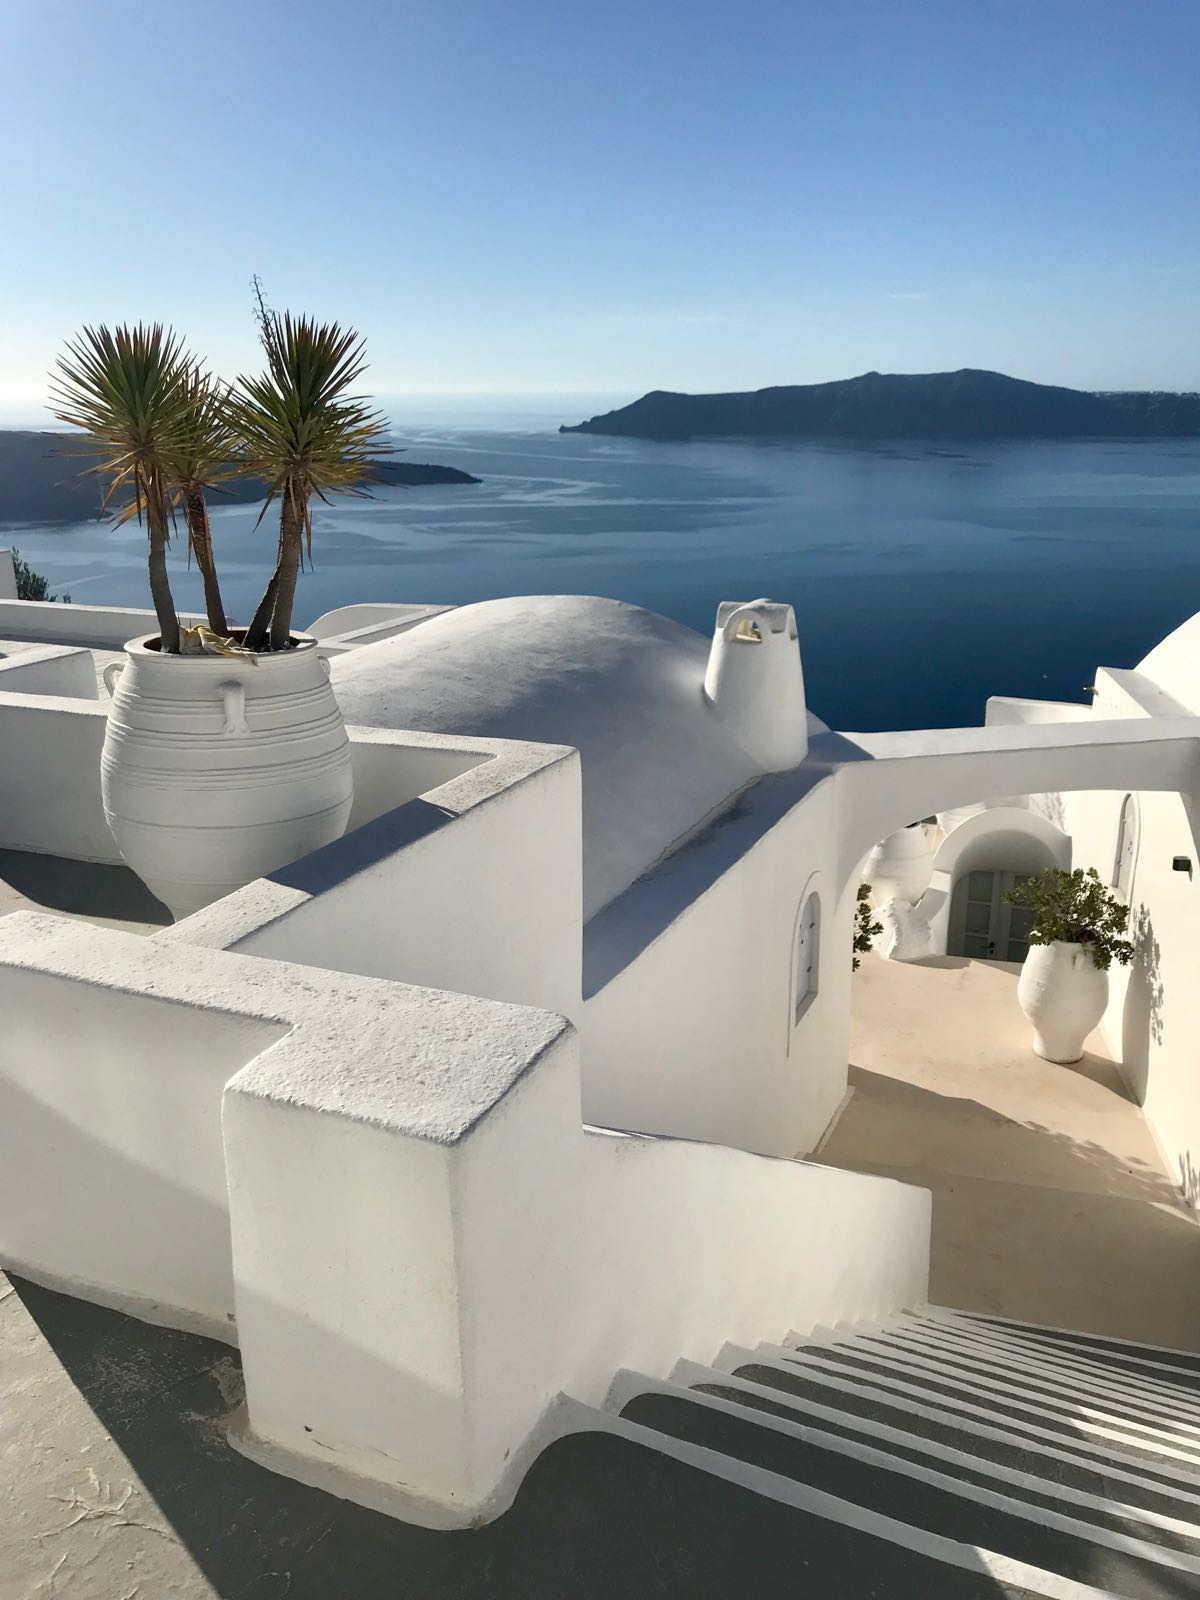 Maze-like white houses in Santorini divided by pathways and roofed by domes